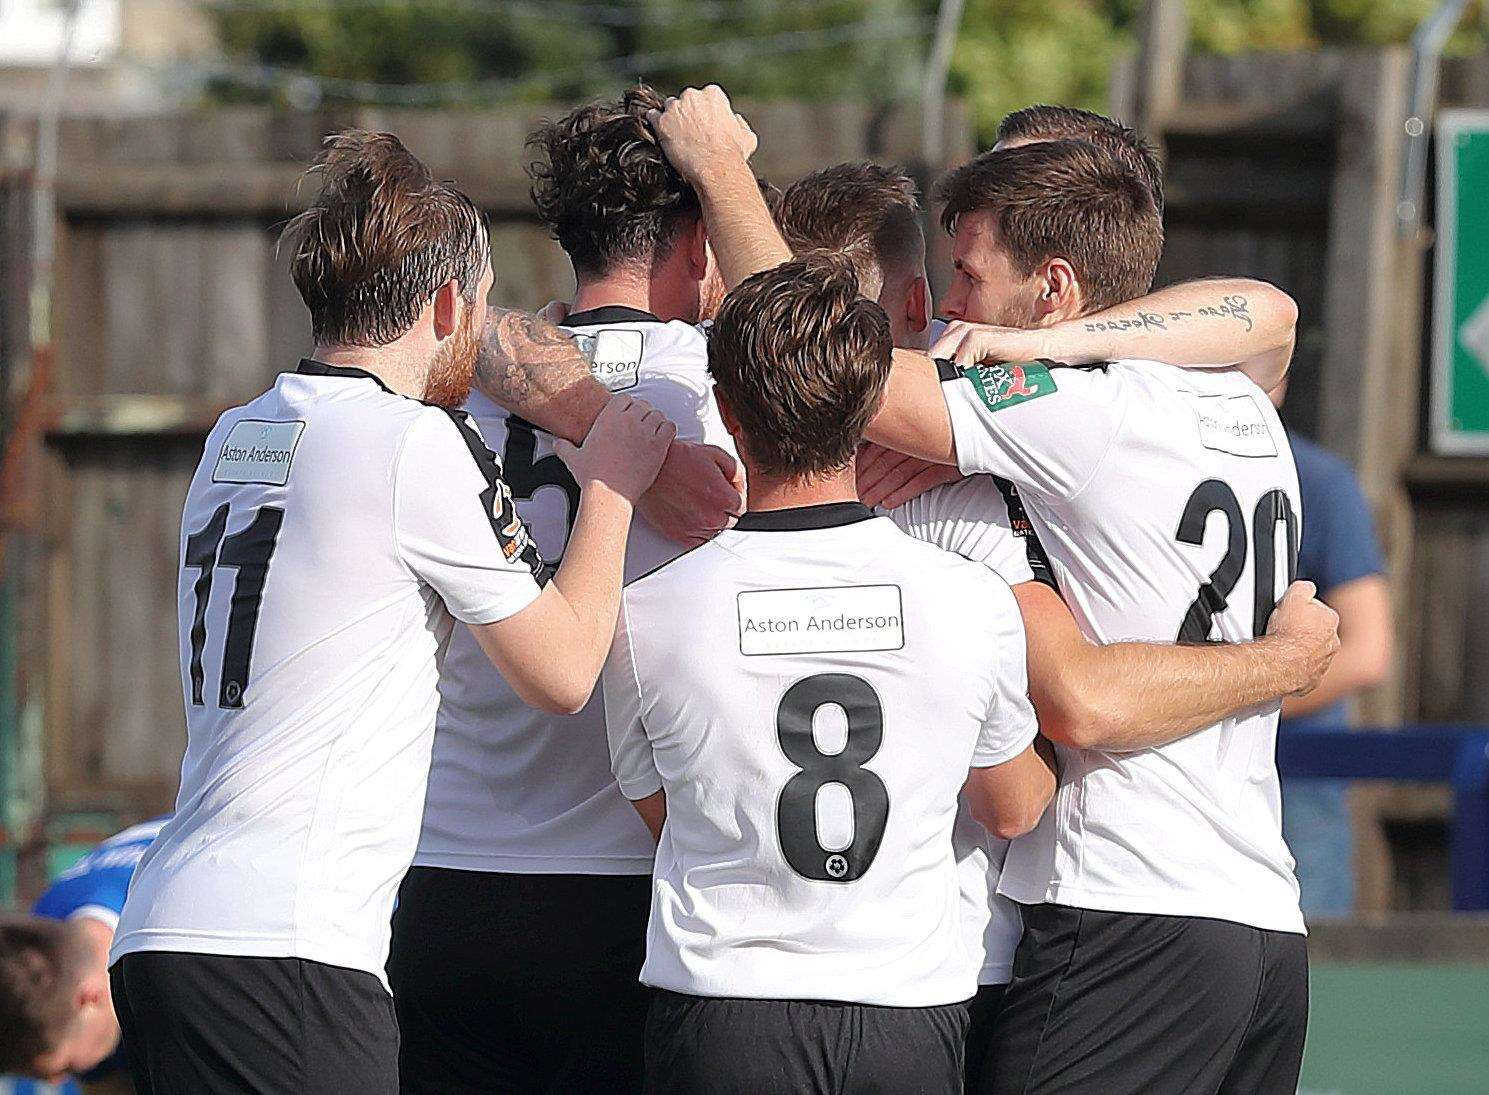 Dartford celebrate at Chippenham Picture: Richard Chappell